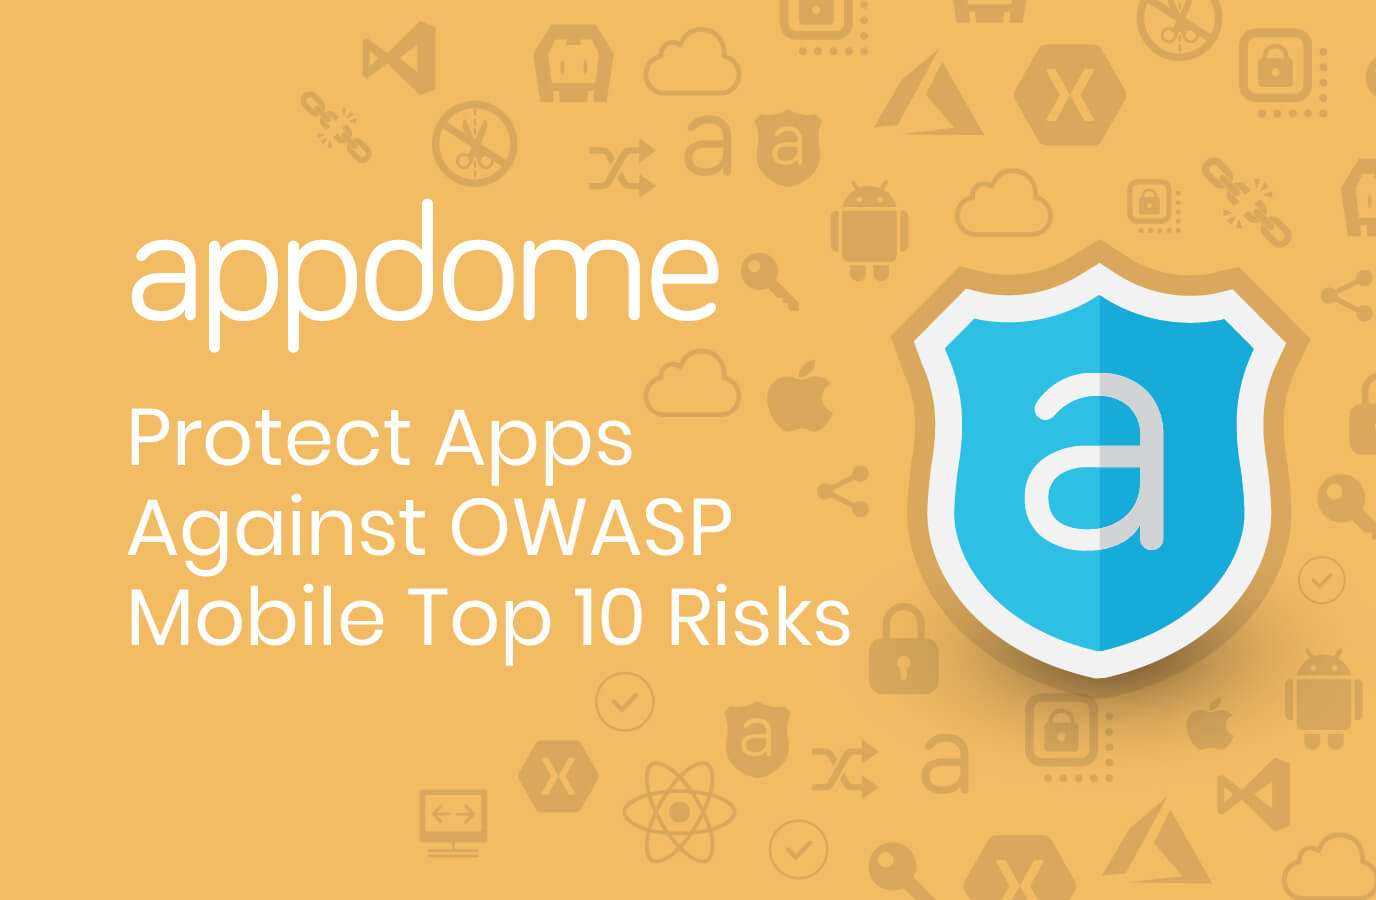 OWASP Top 10 Mobile Risks | Appdome